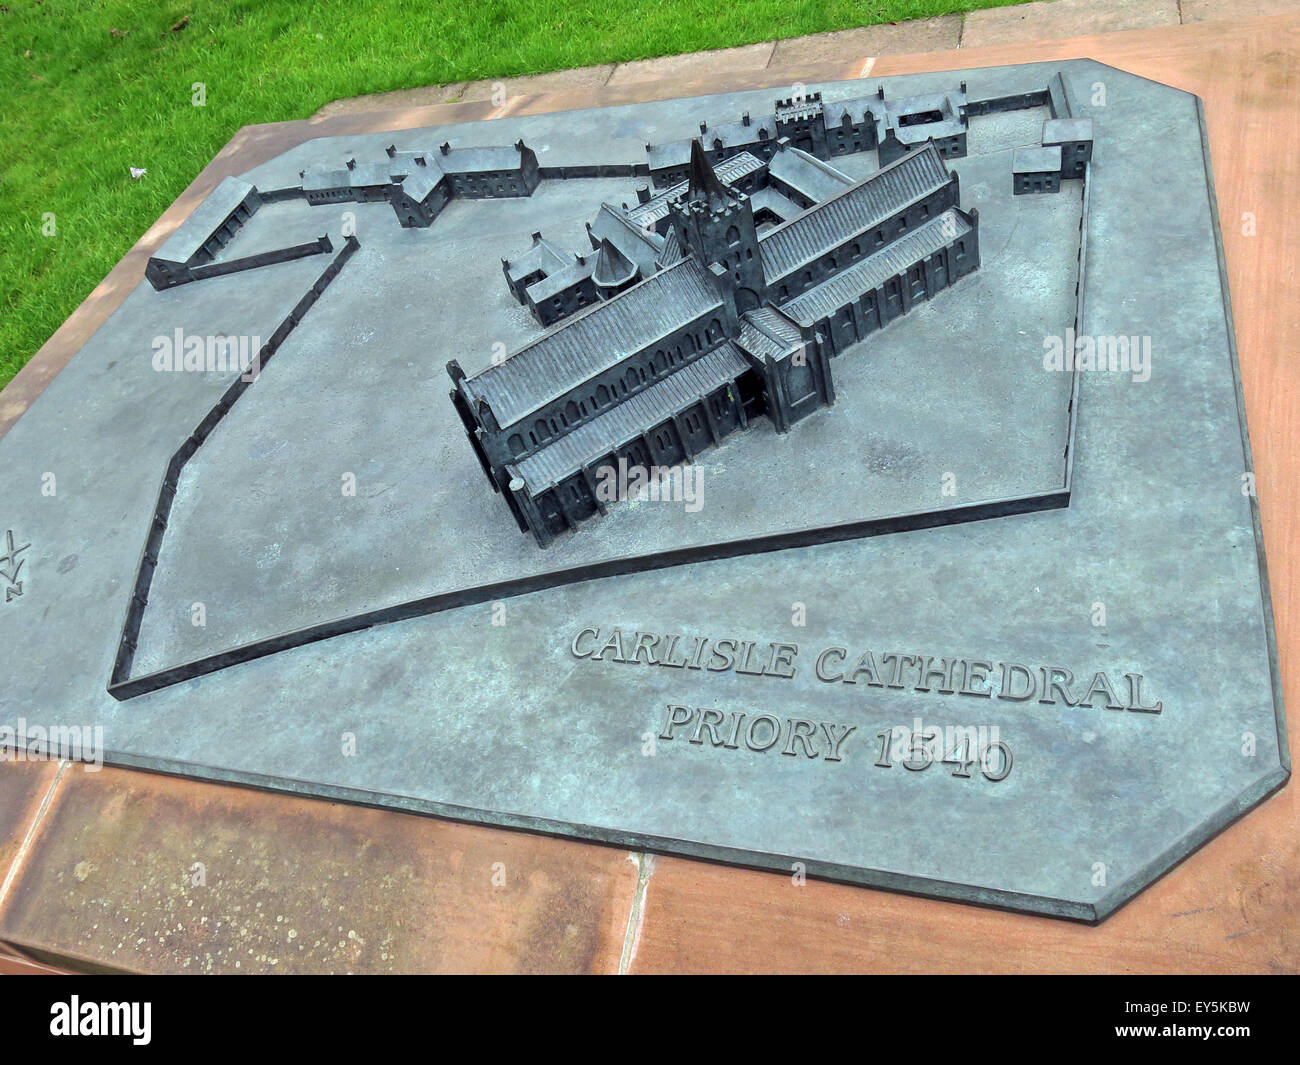 Bronze Model of Carlisle Cathedral, Cumbria, England, UK - Stock Image